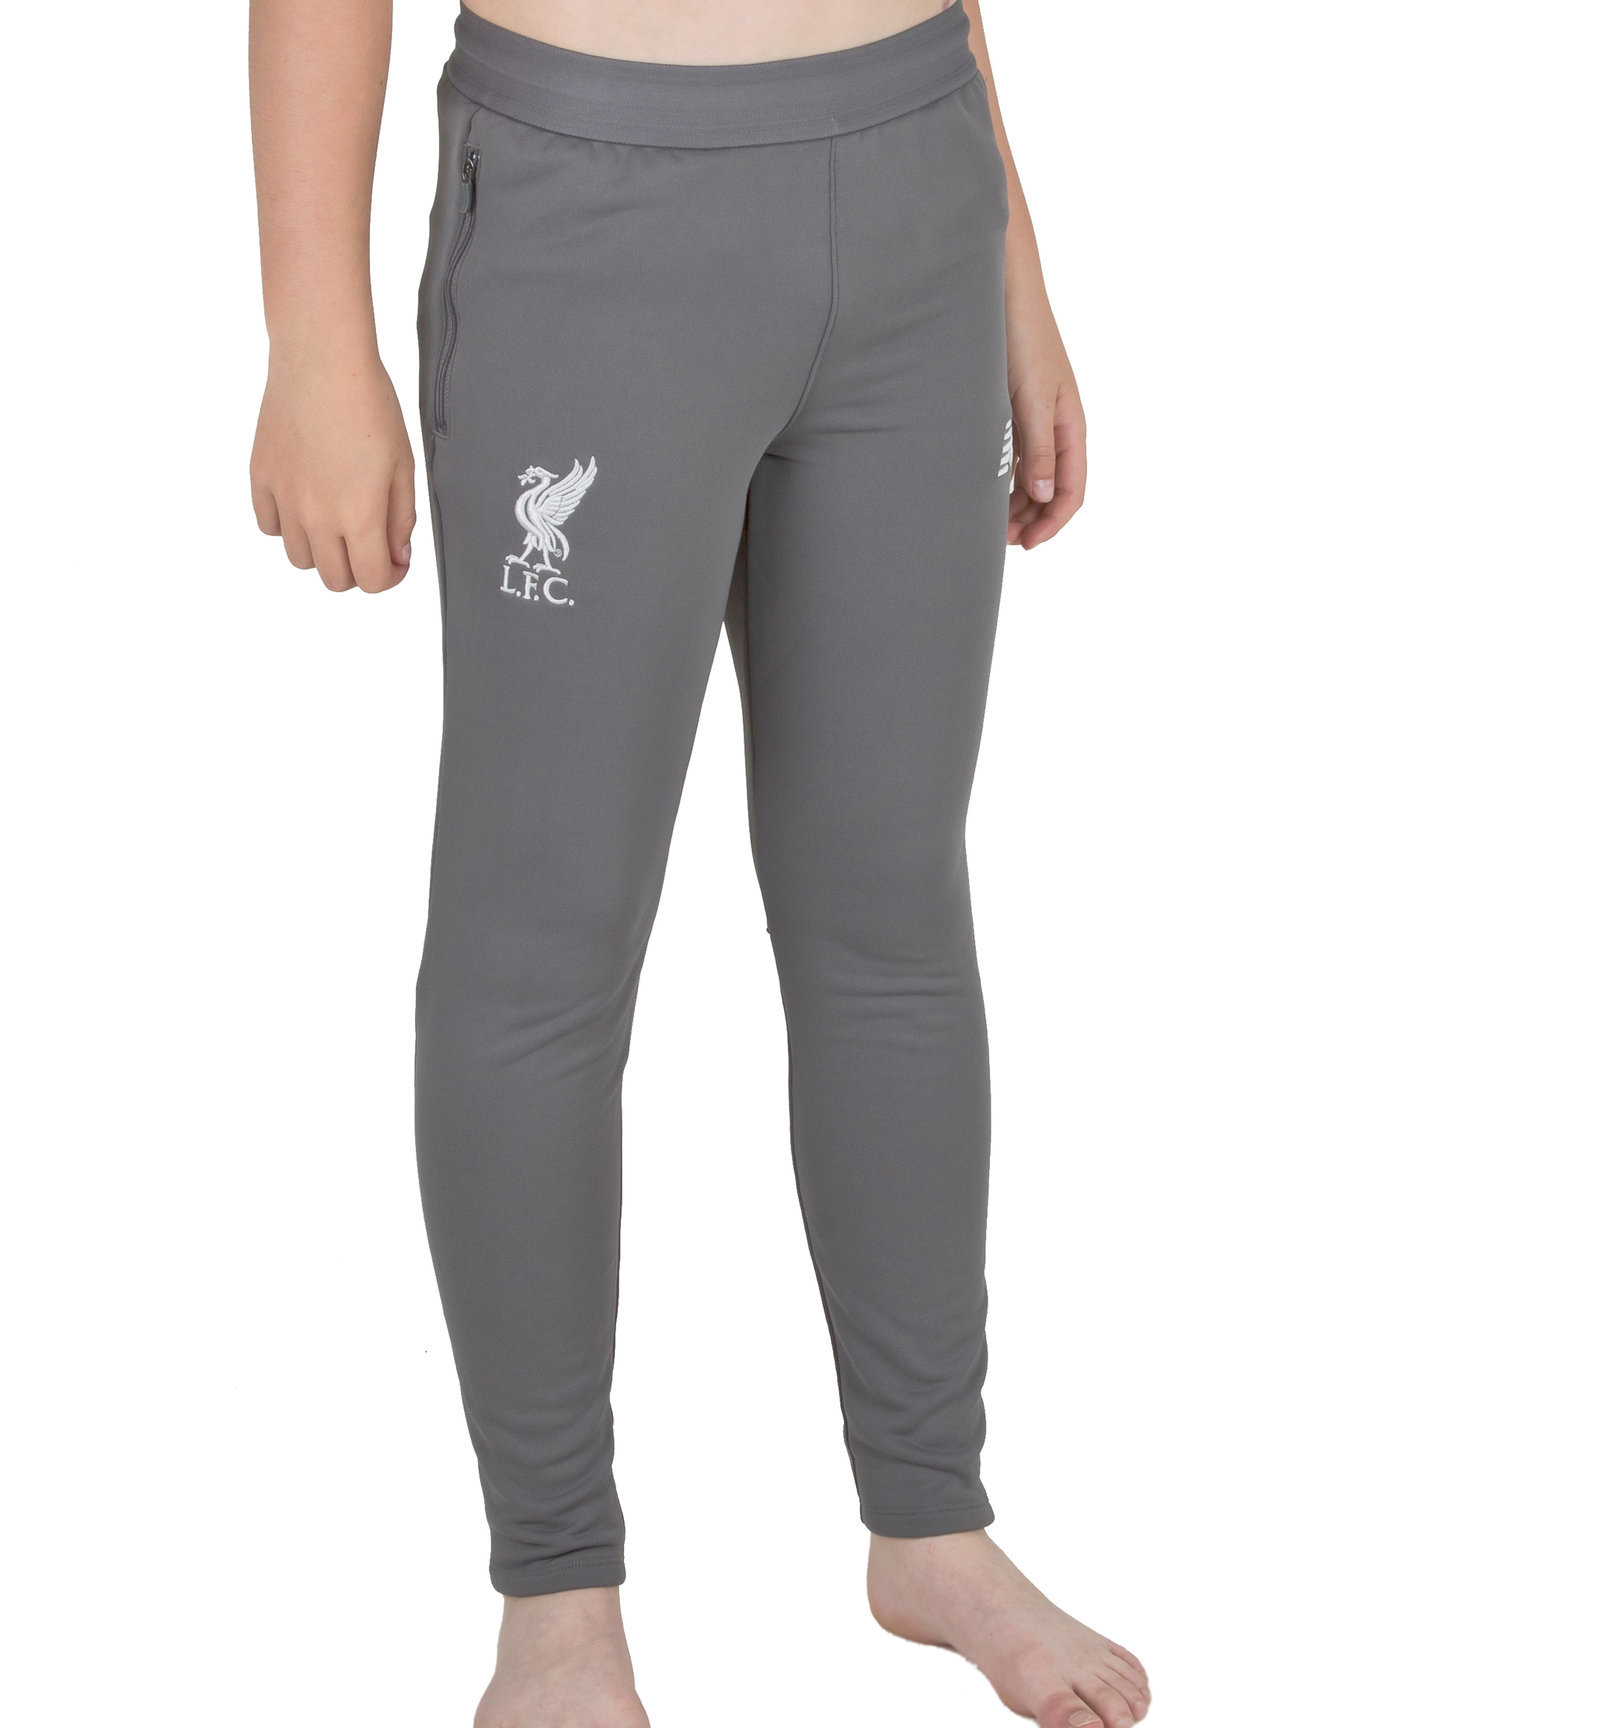 31f5ec683aae2 Details about New Balance Liverpool FC 18/19 Elite Kids Tech Training  Sports Pants Trousers